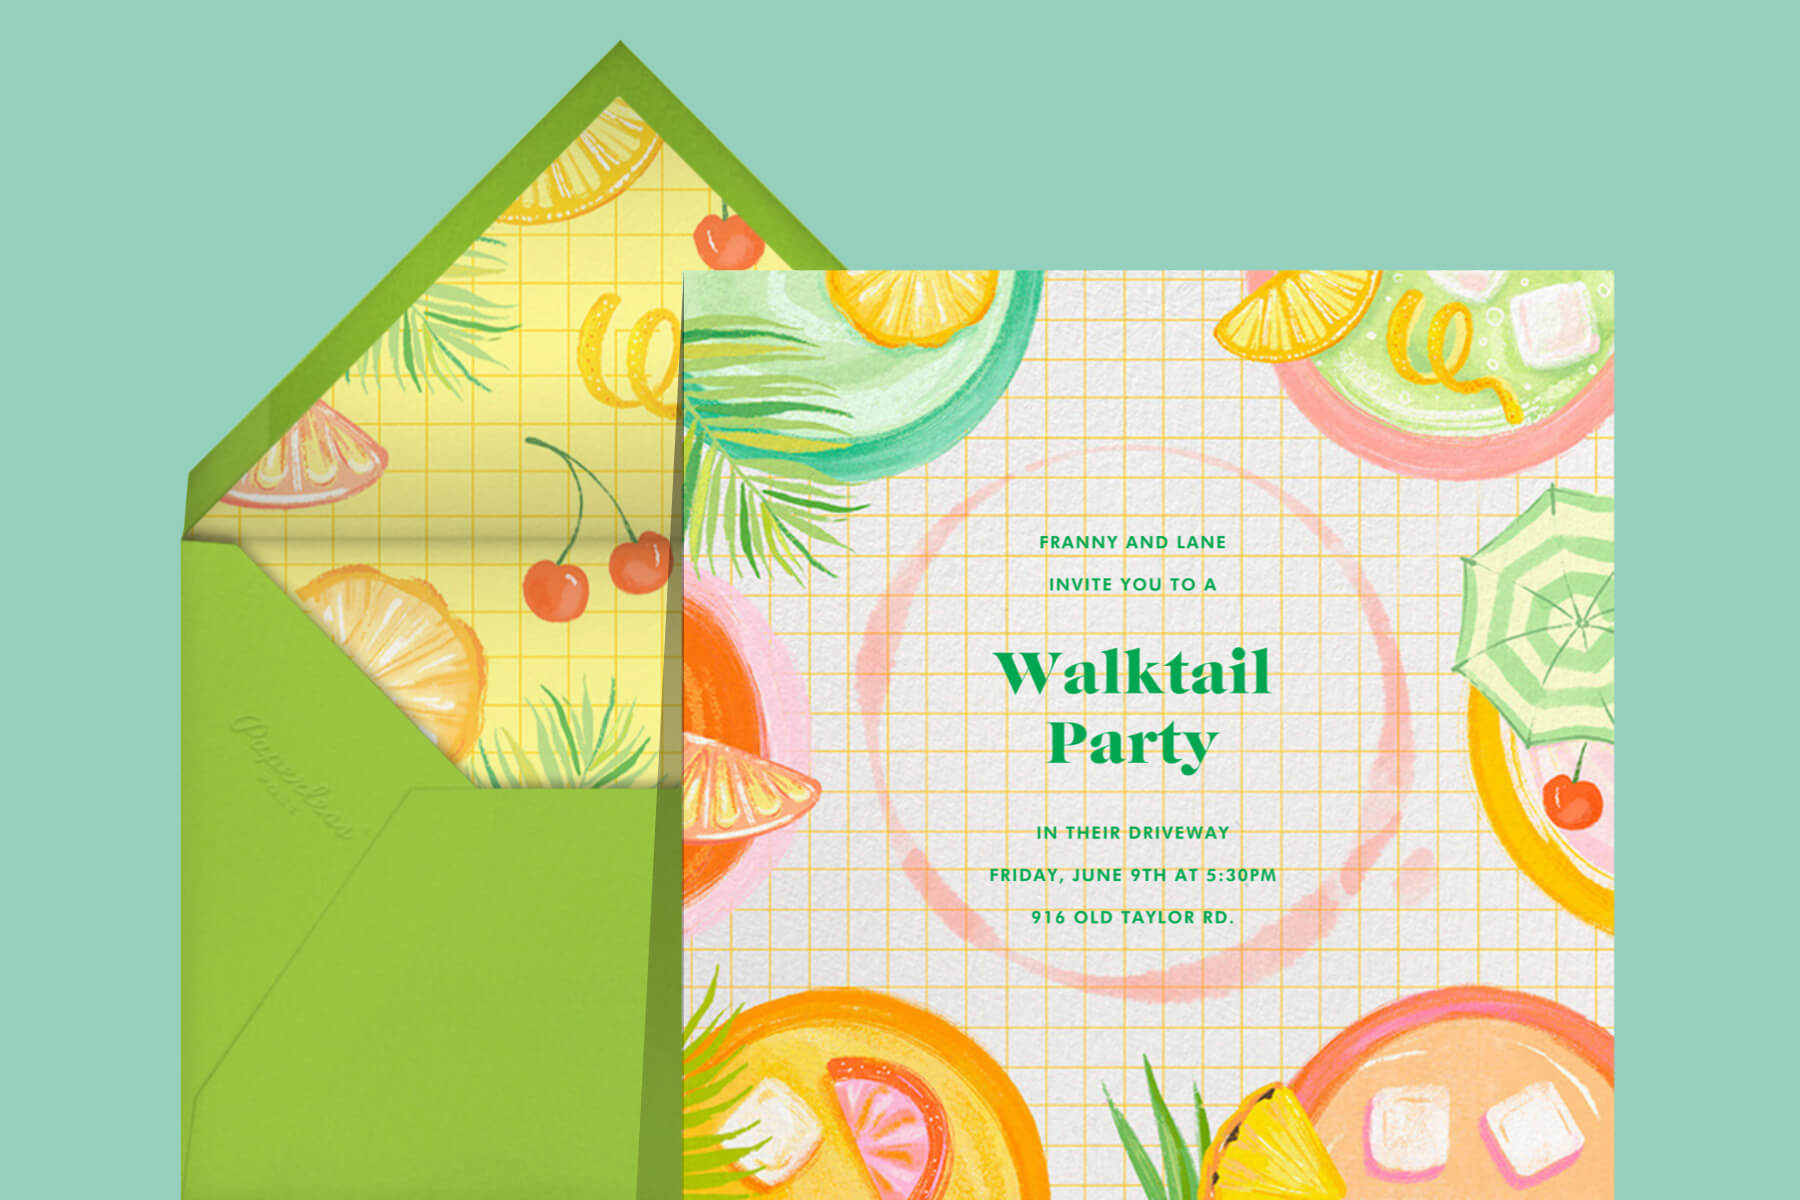 Party invitation with illustrations of tropical cocktails.